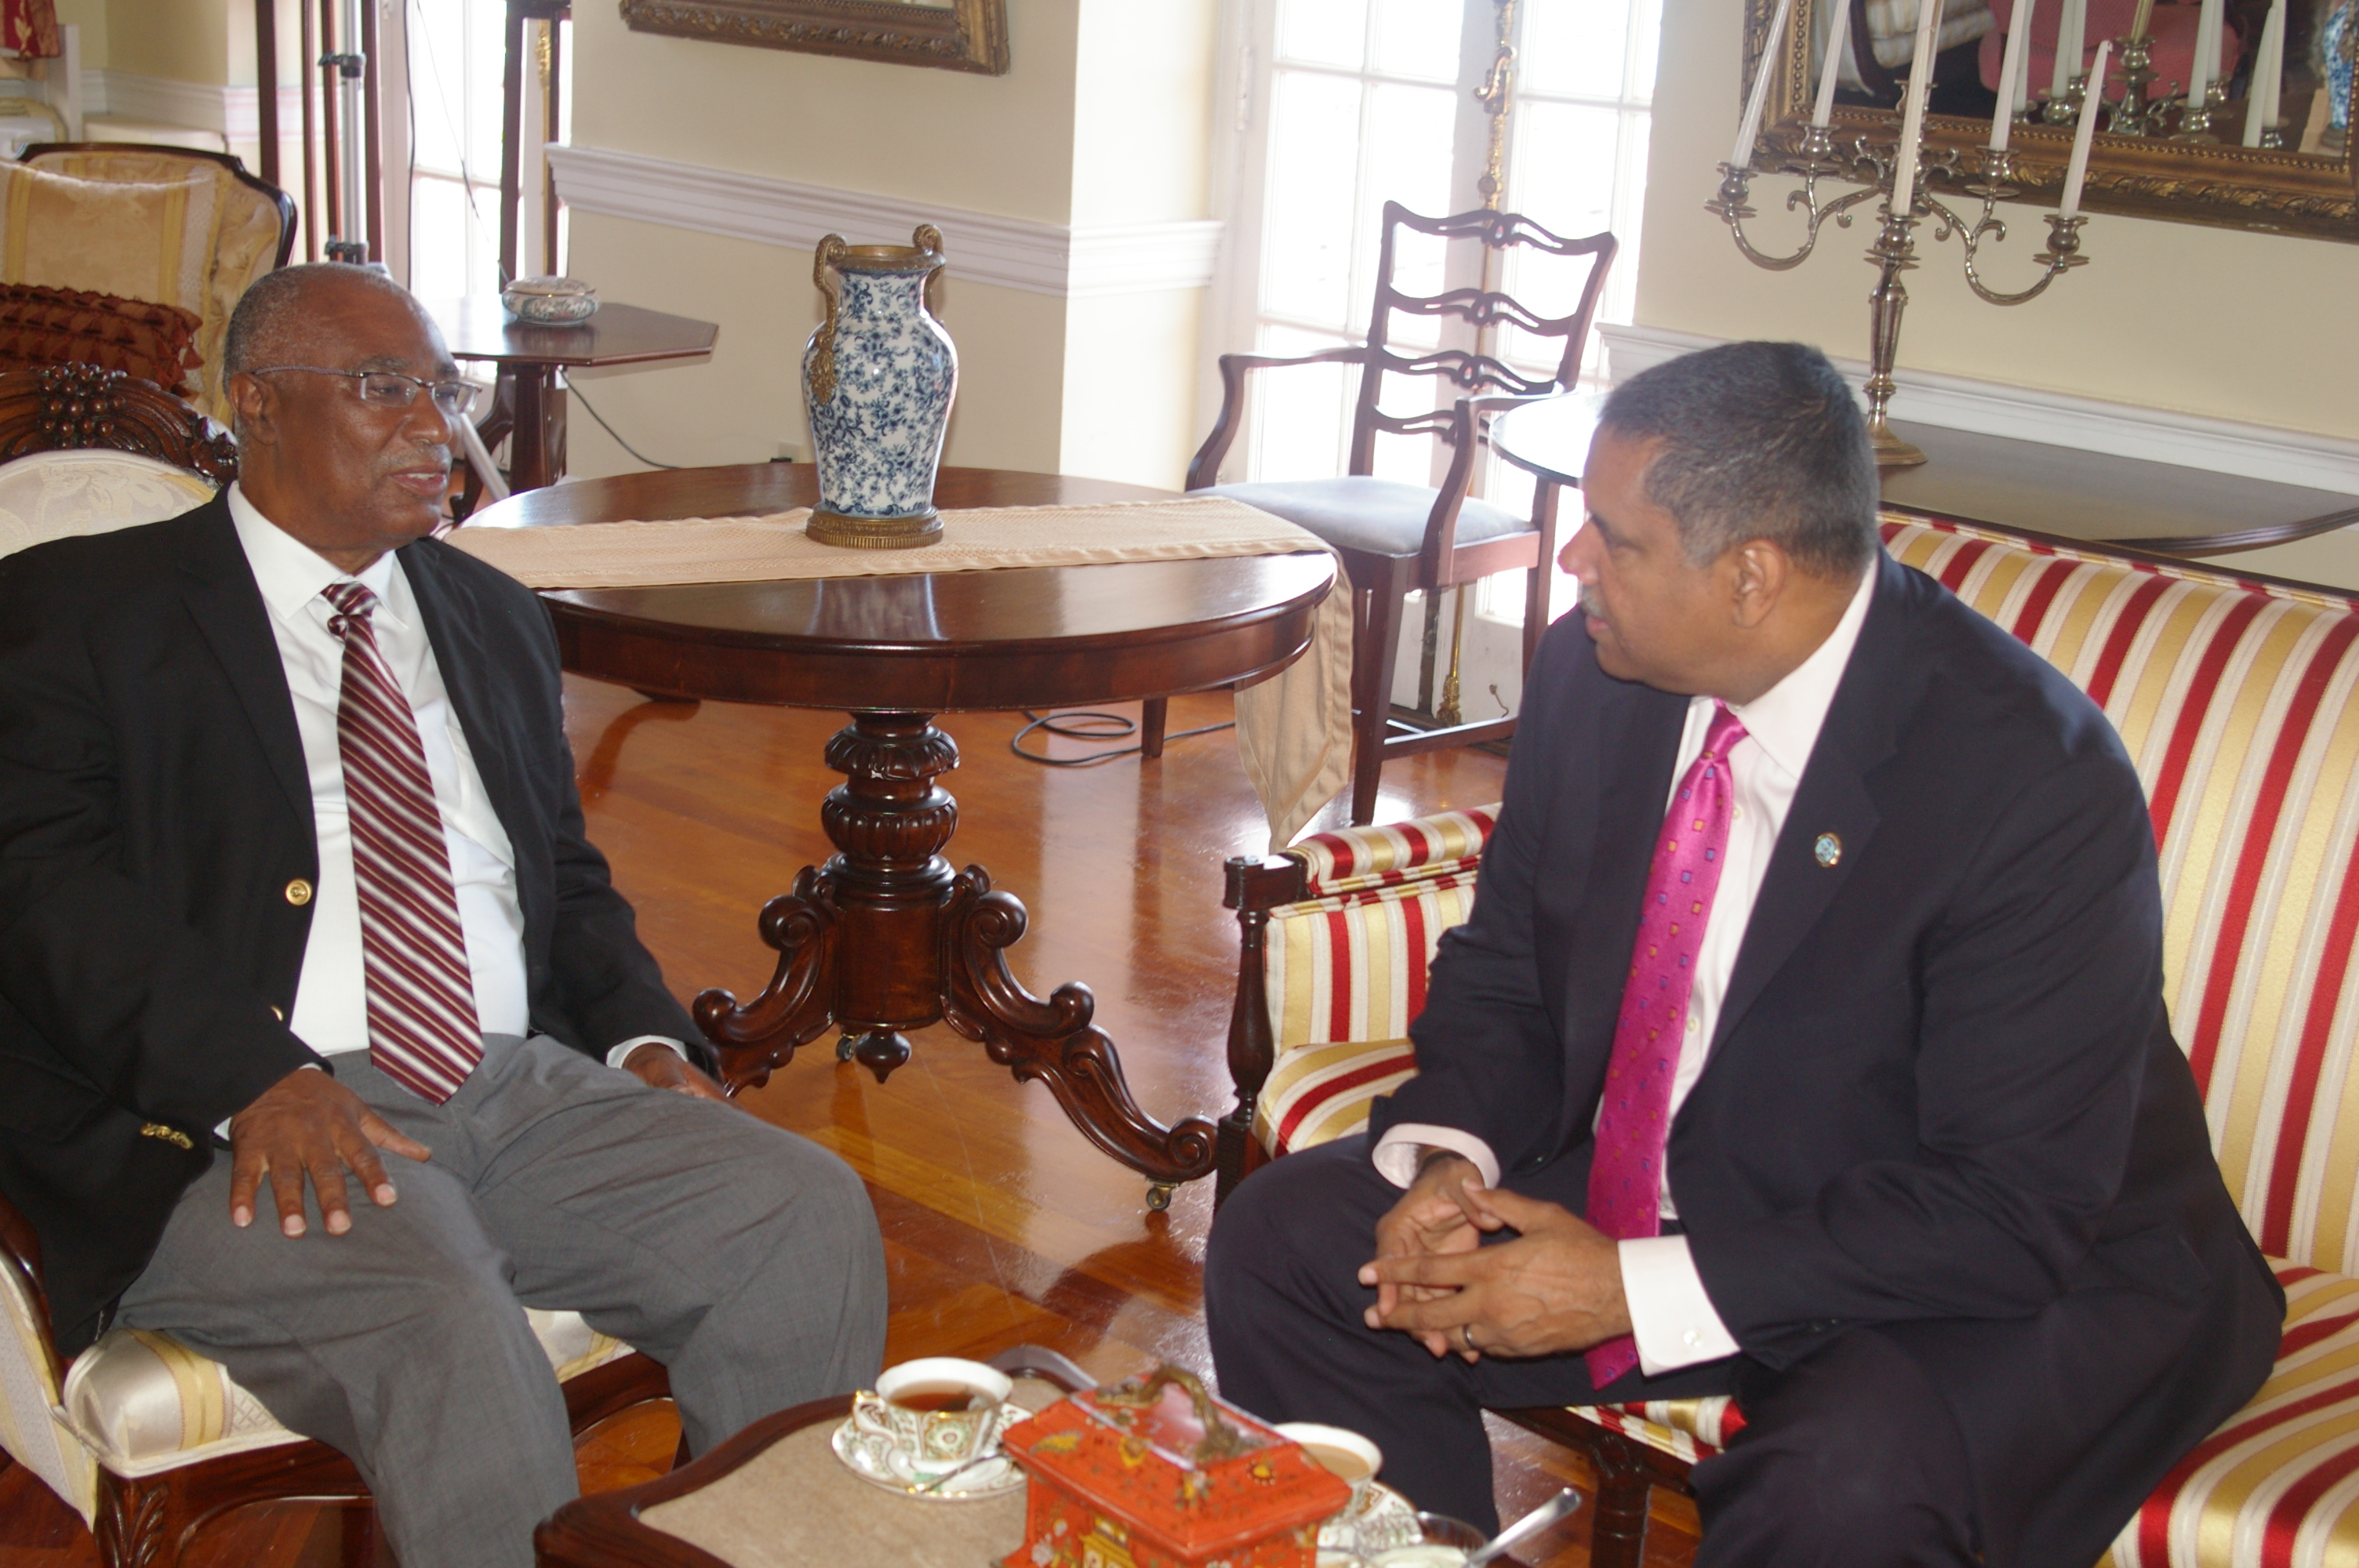 Premier of Nevis, the Hon. Joseph Parry with Governor of the United States Virgin Islands (USVI), the Hon. John P. de Jongh